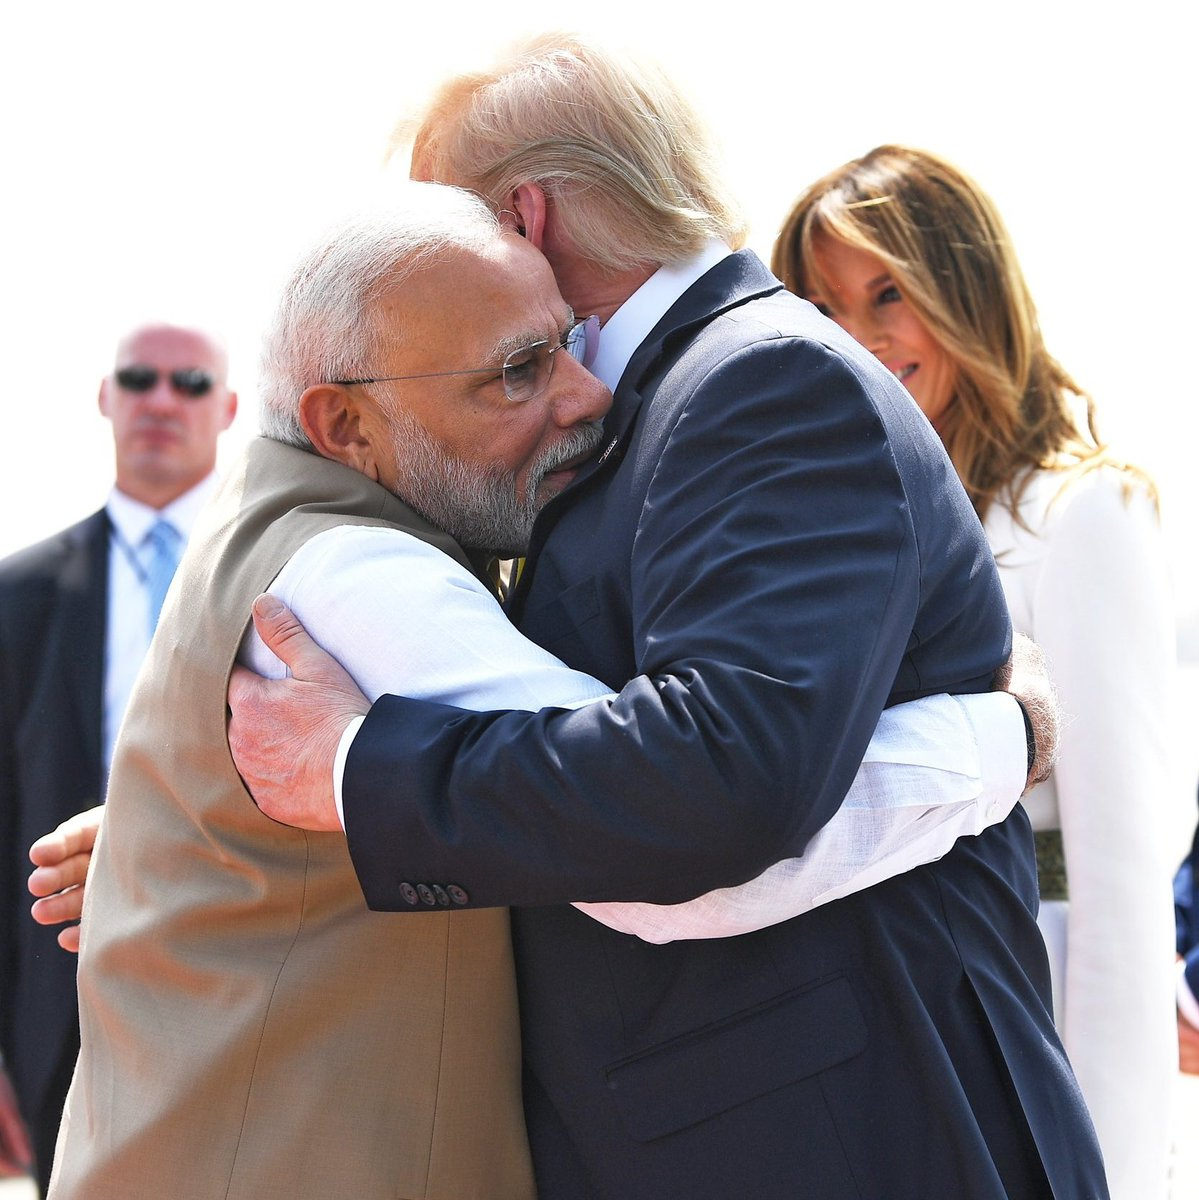 The most powerful picture on internet today #NamasteyTrump